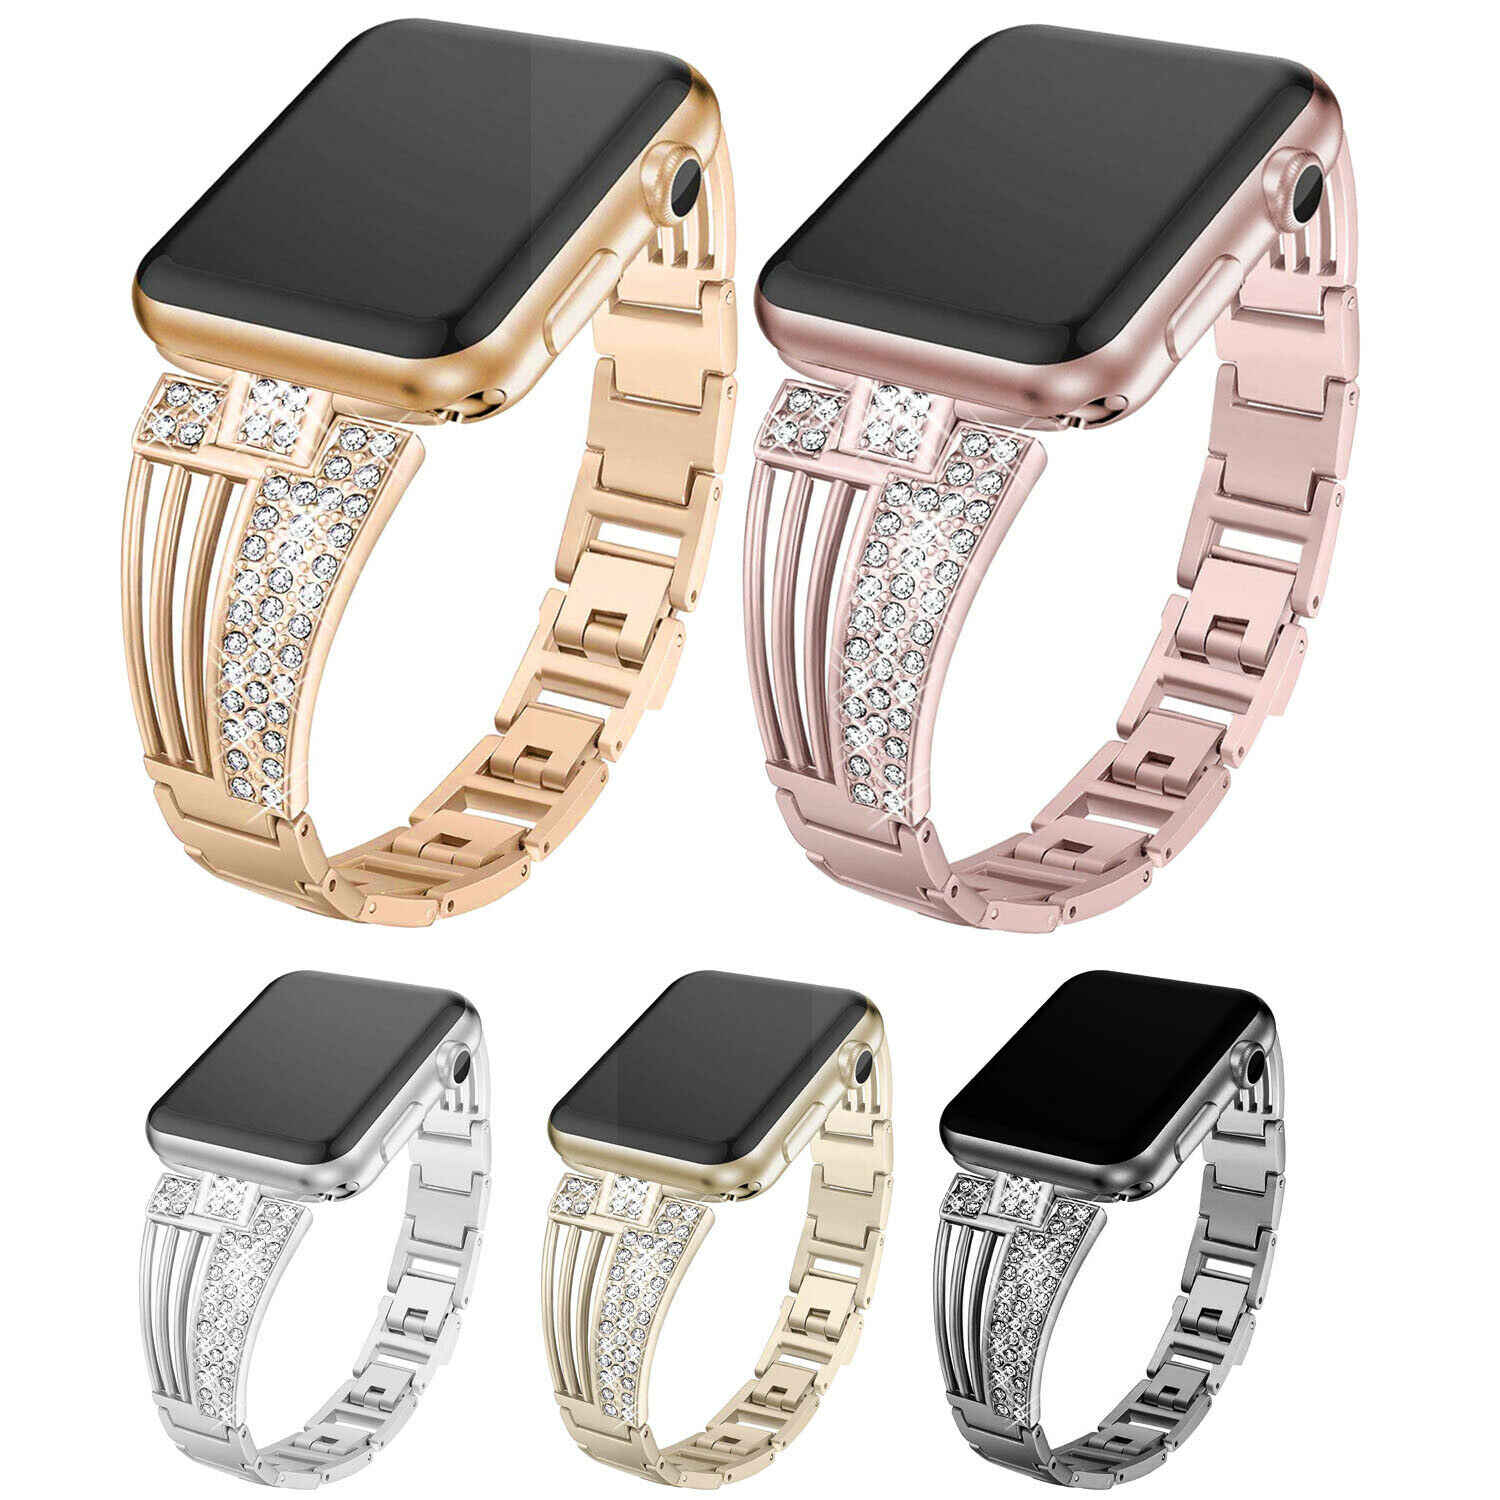 Wanita Diamond Watch Tali untuk Apple Watch 38 Mm 42 Mm 40 Mm 44 Mm Band untuk IWatch Seri 5 4 3 2 1 Stainless Steel Link Gelang